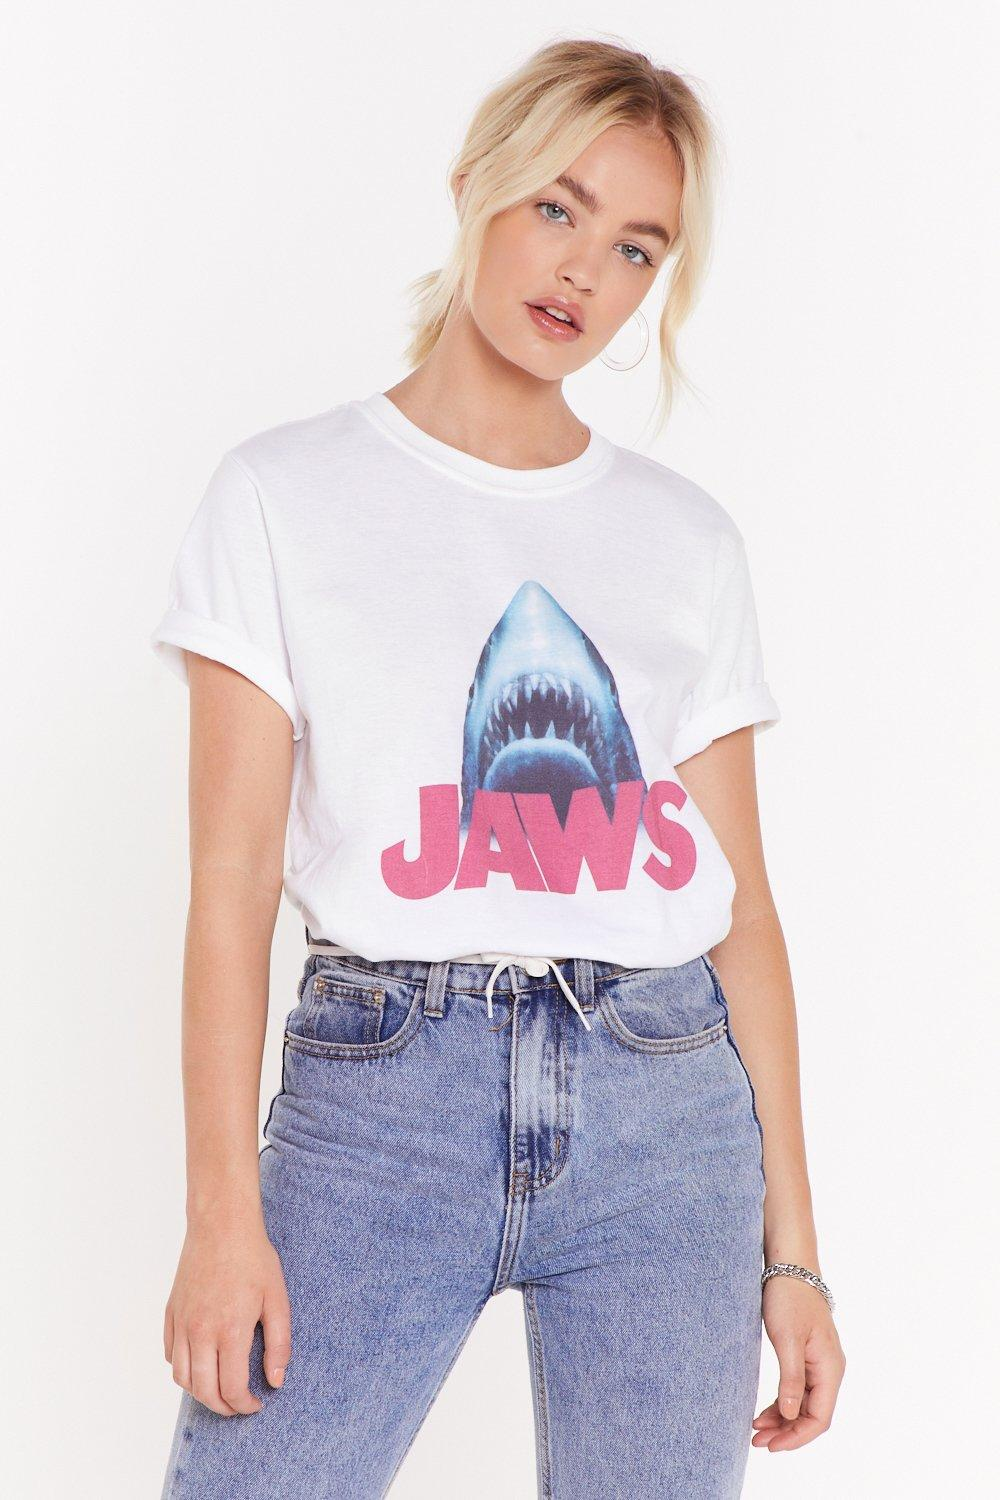 Jaws Centre Graphic Tee by Nasty Gal